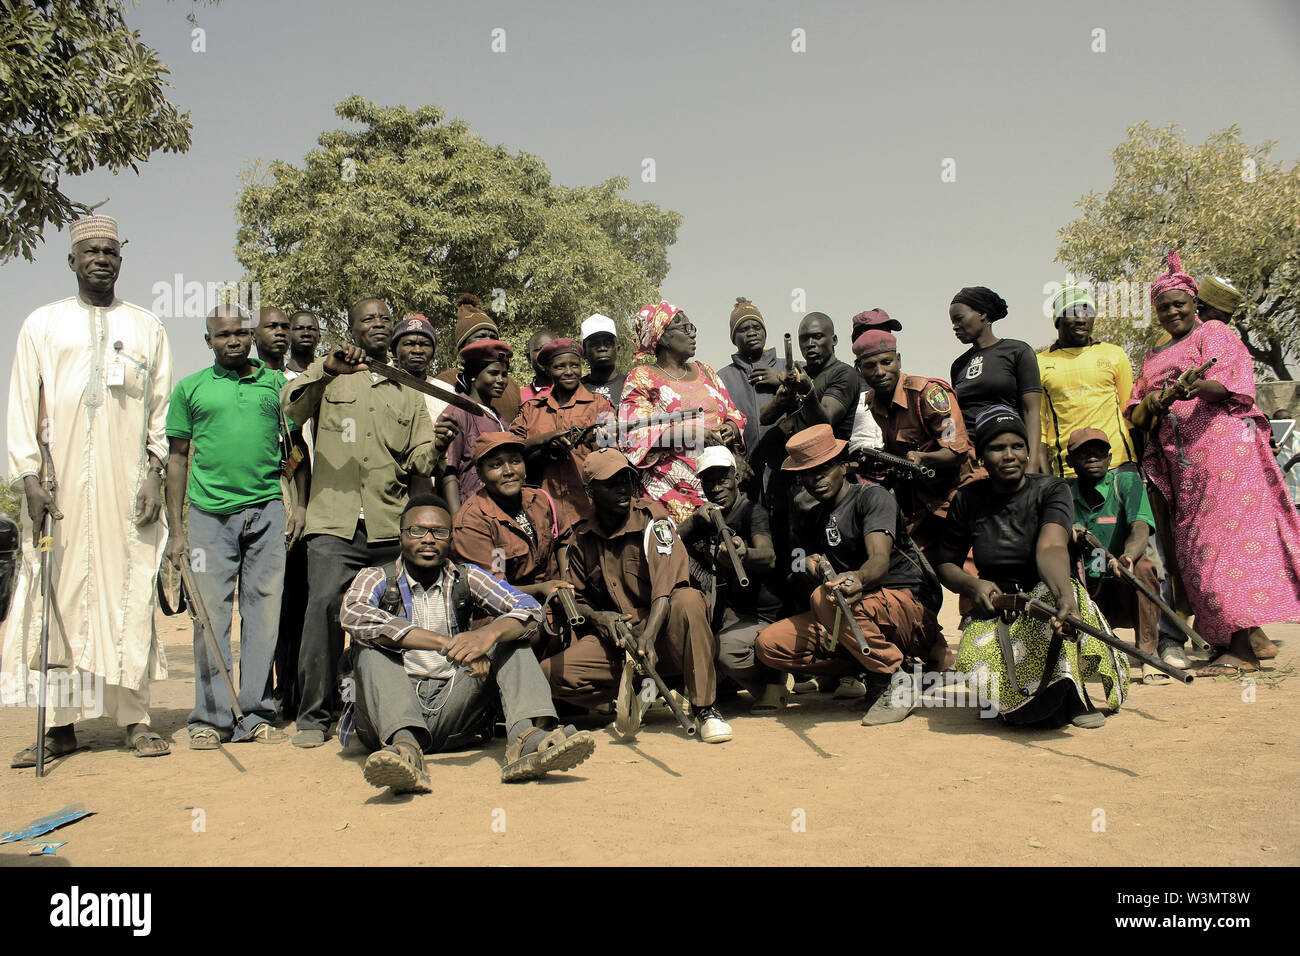 Immanuel Abayomi Afolabi, an ethnographic researcher and documentary multimedia journalist, sits with some members of Lassa vigilante group, in Borno state. - Stock Image